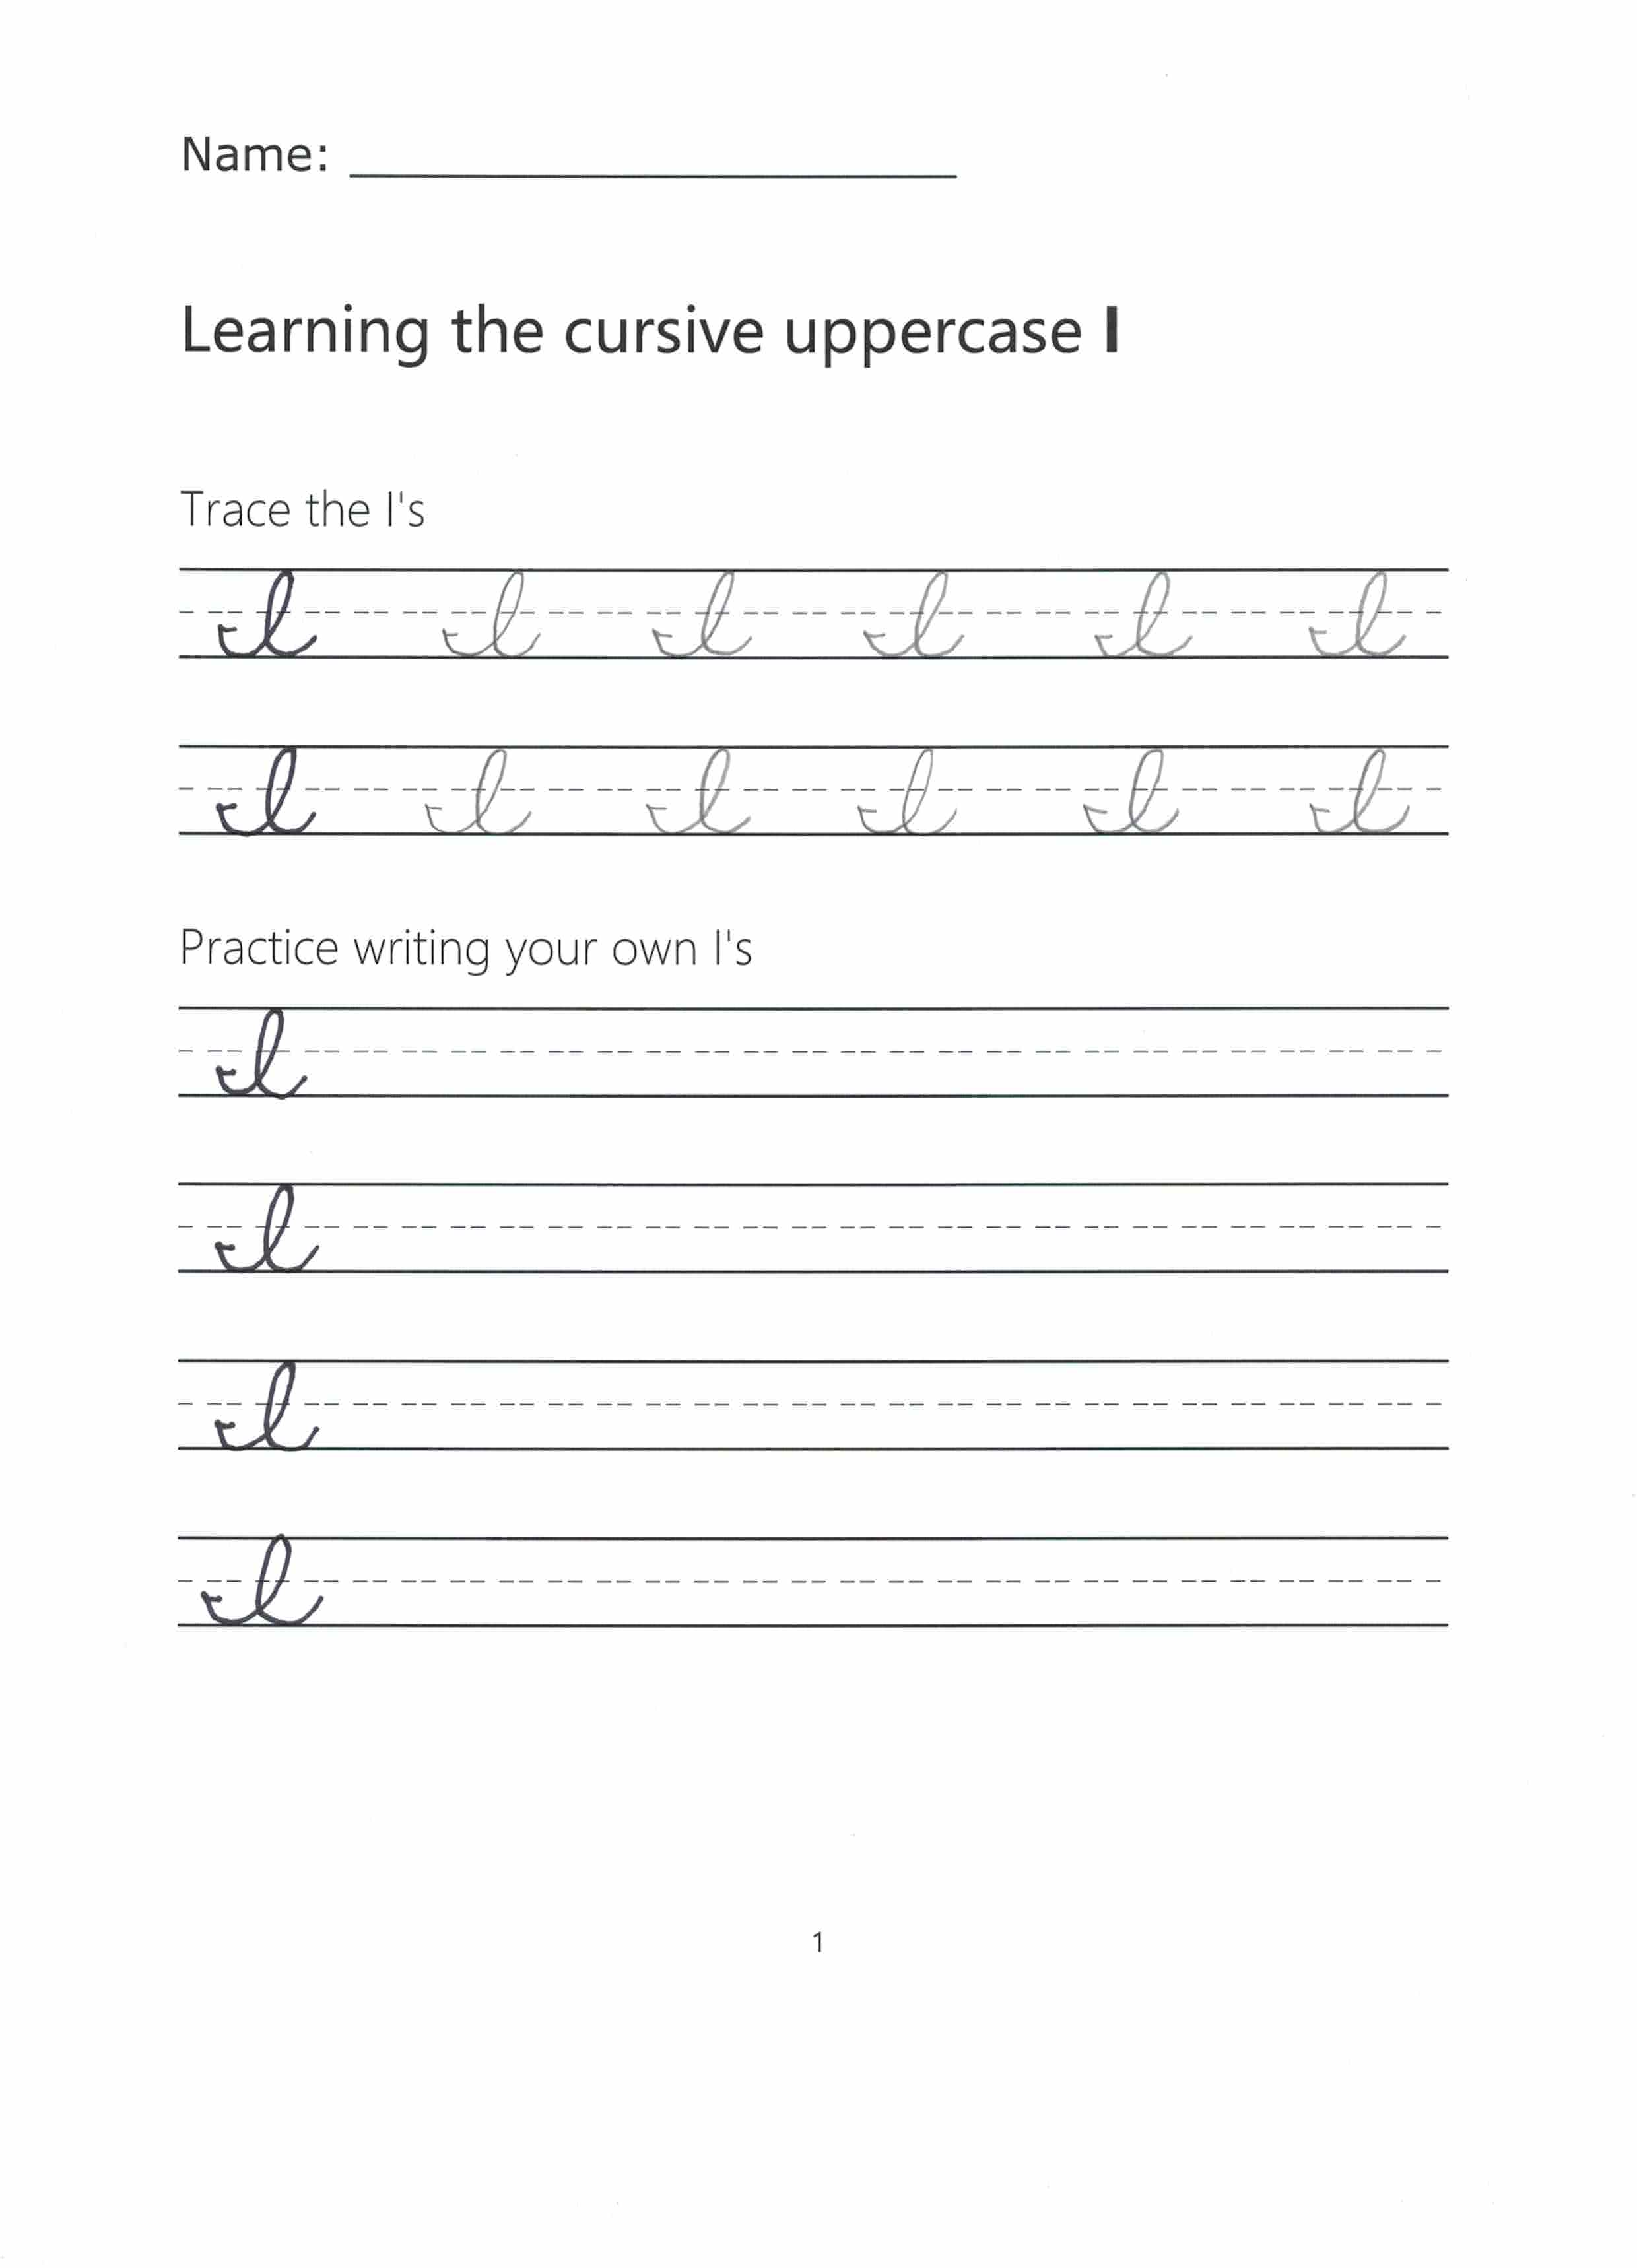 Preview of Worksheet for writing the Uppercase letter I in cursive